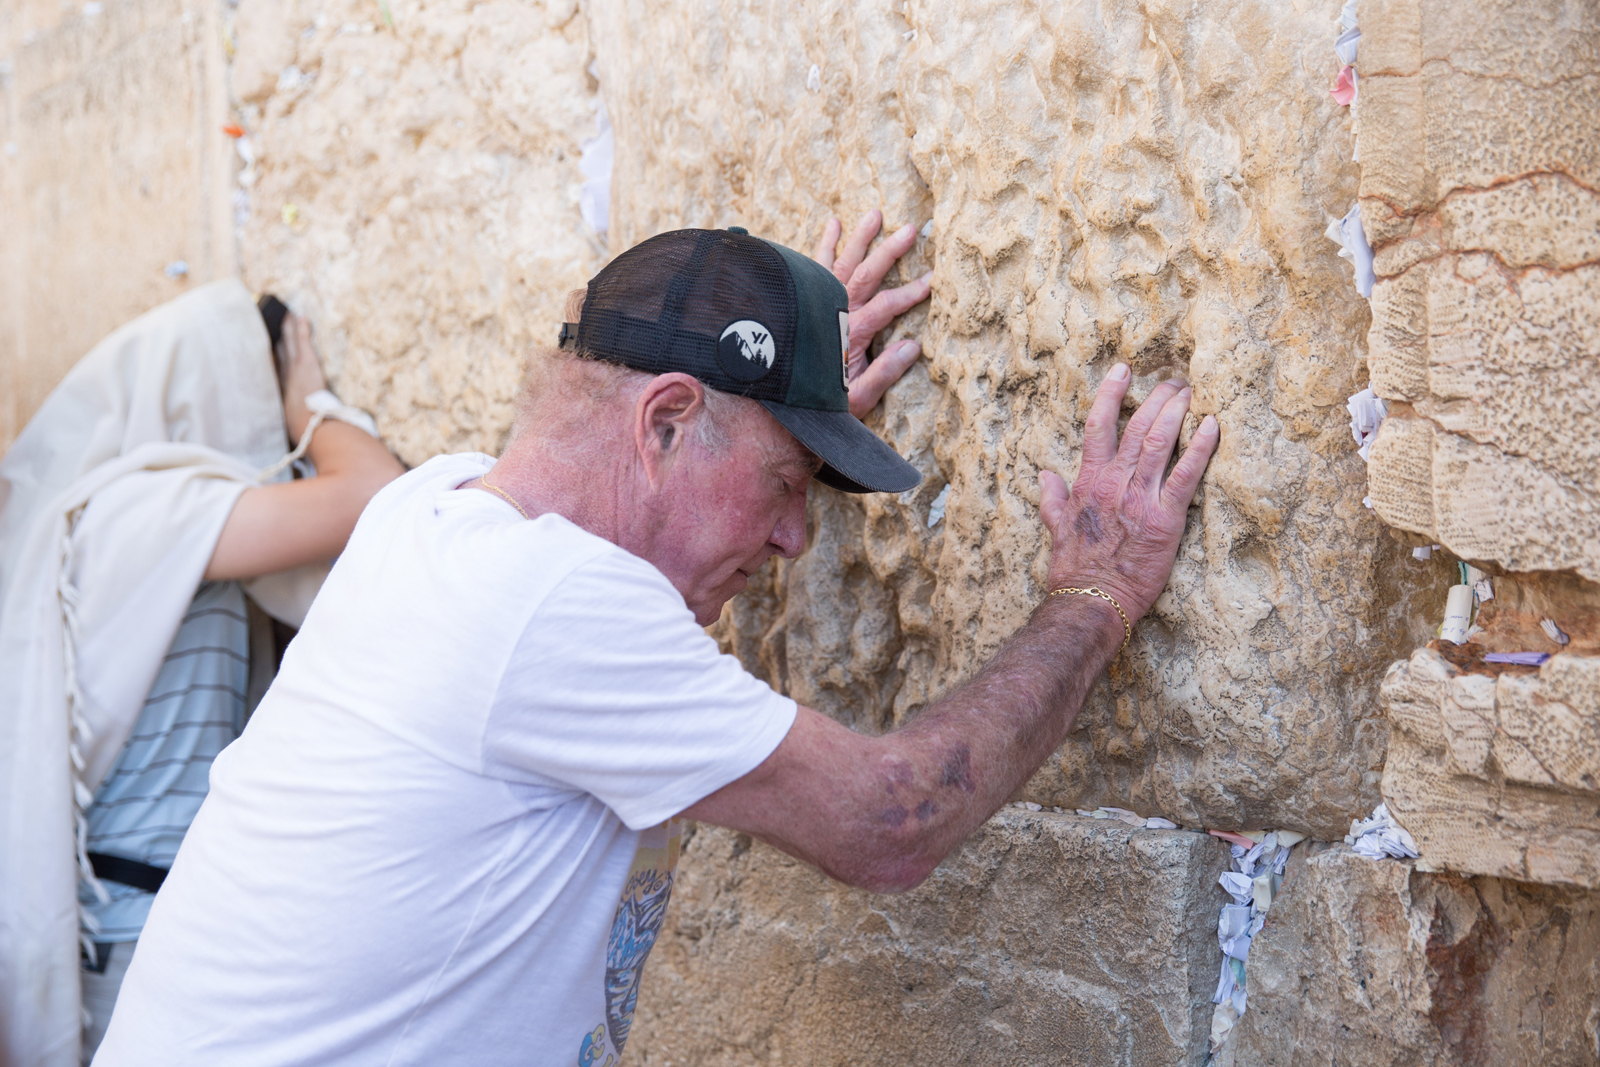 American actor James Caan at the Western Wall. Photo Flash 90